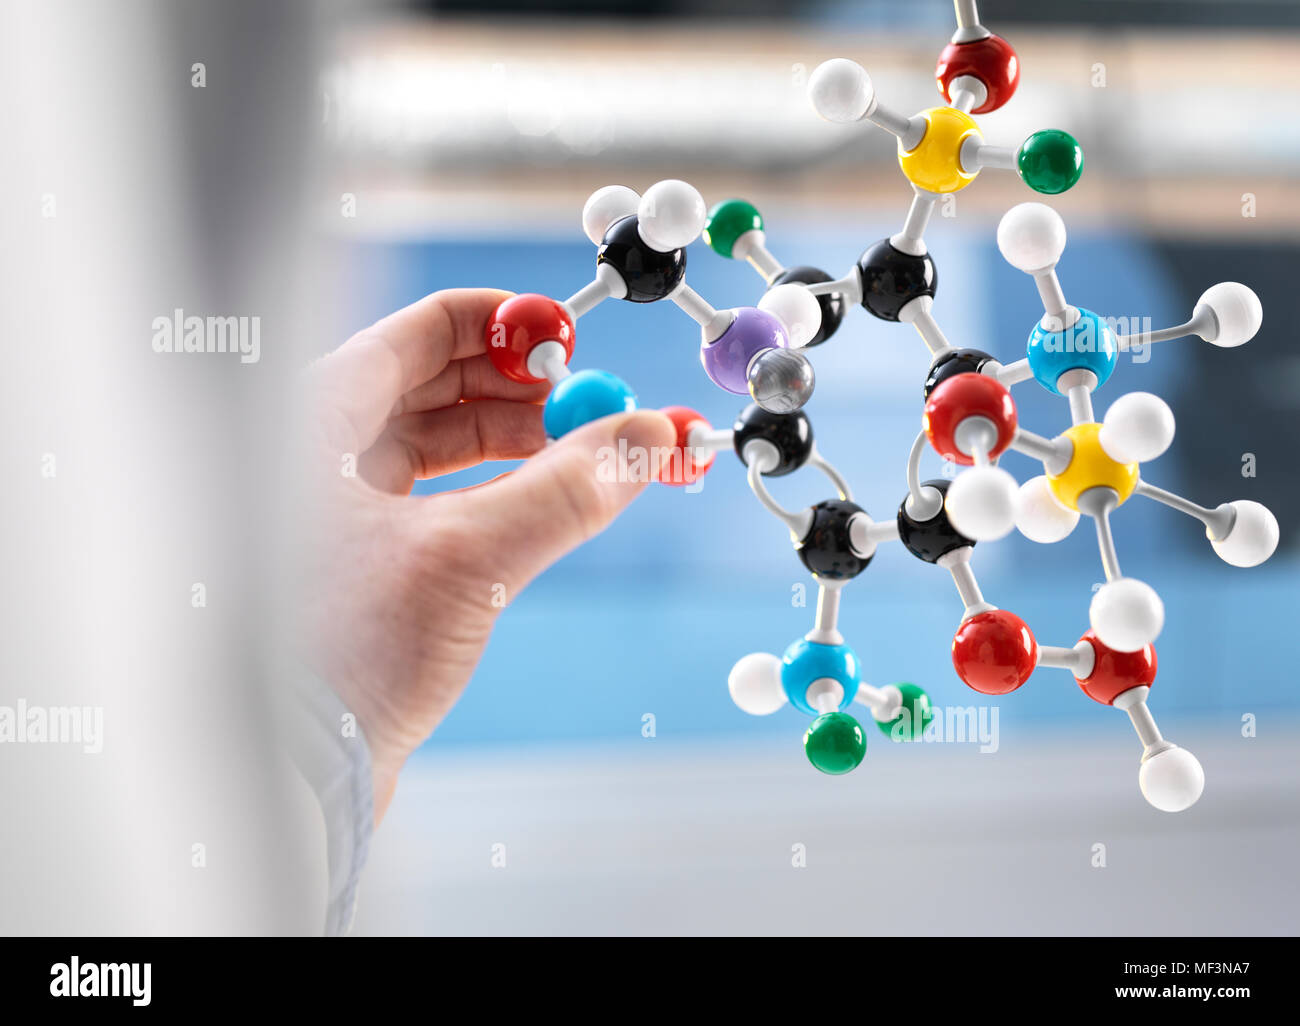 Scientist holding a molecular model - Stock Image